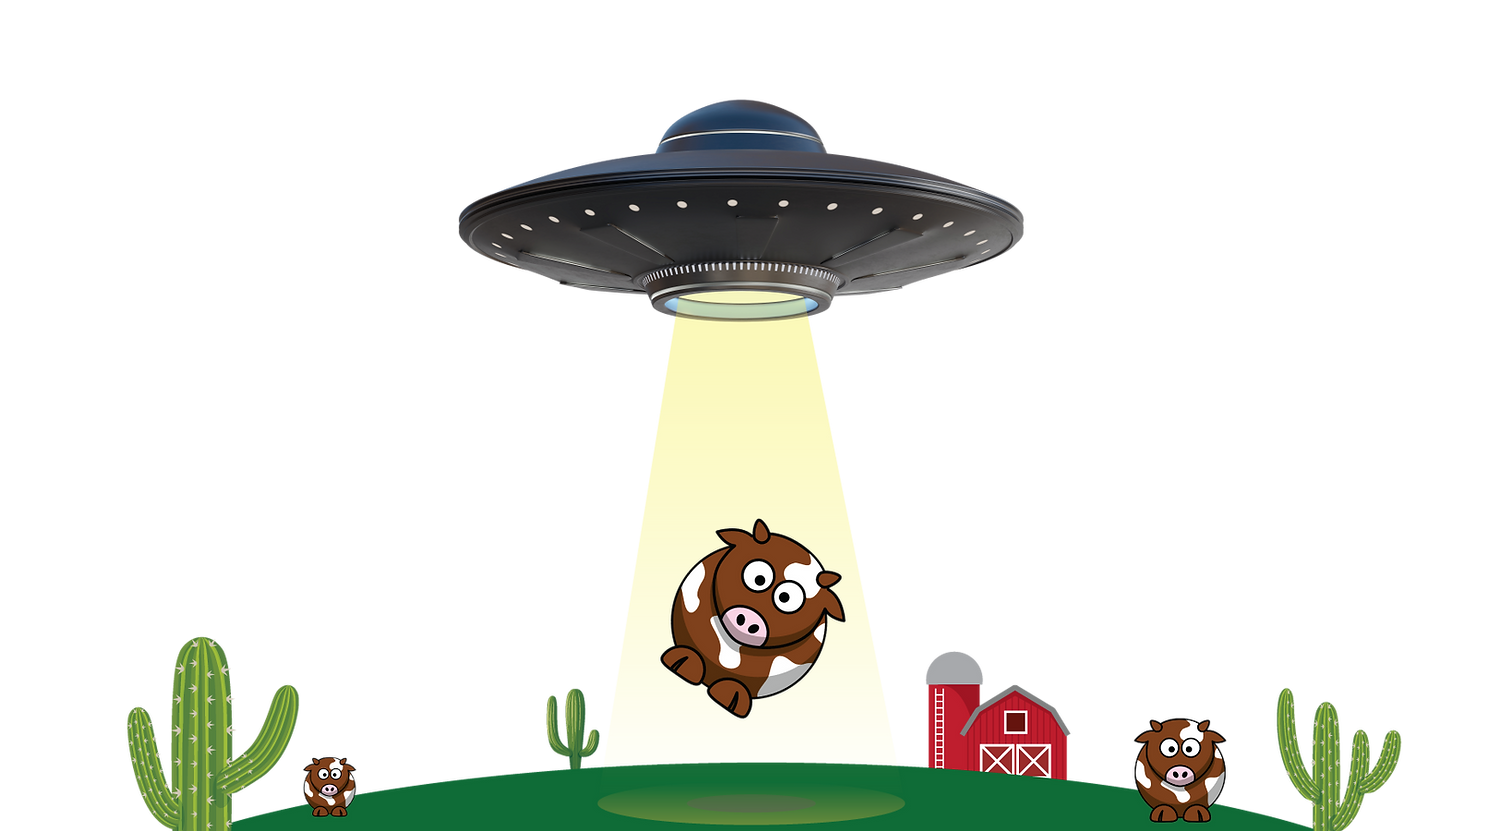 Lights Jerky UFO Brown Cow Abduction